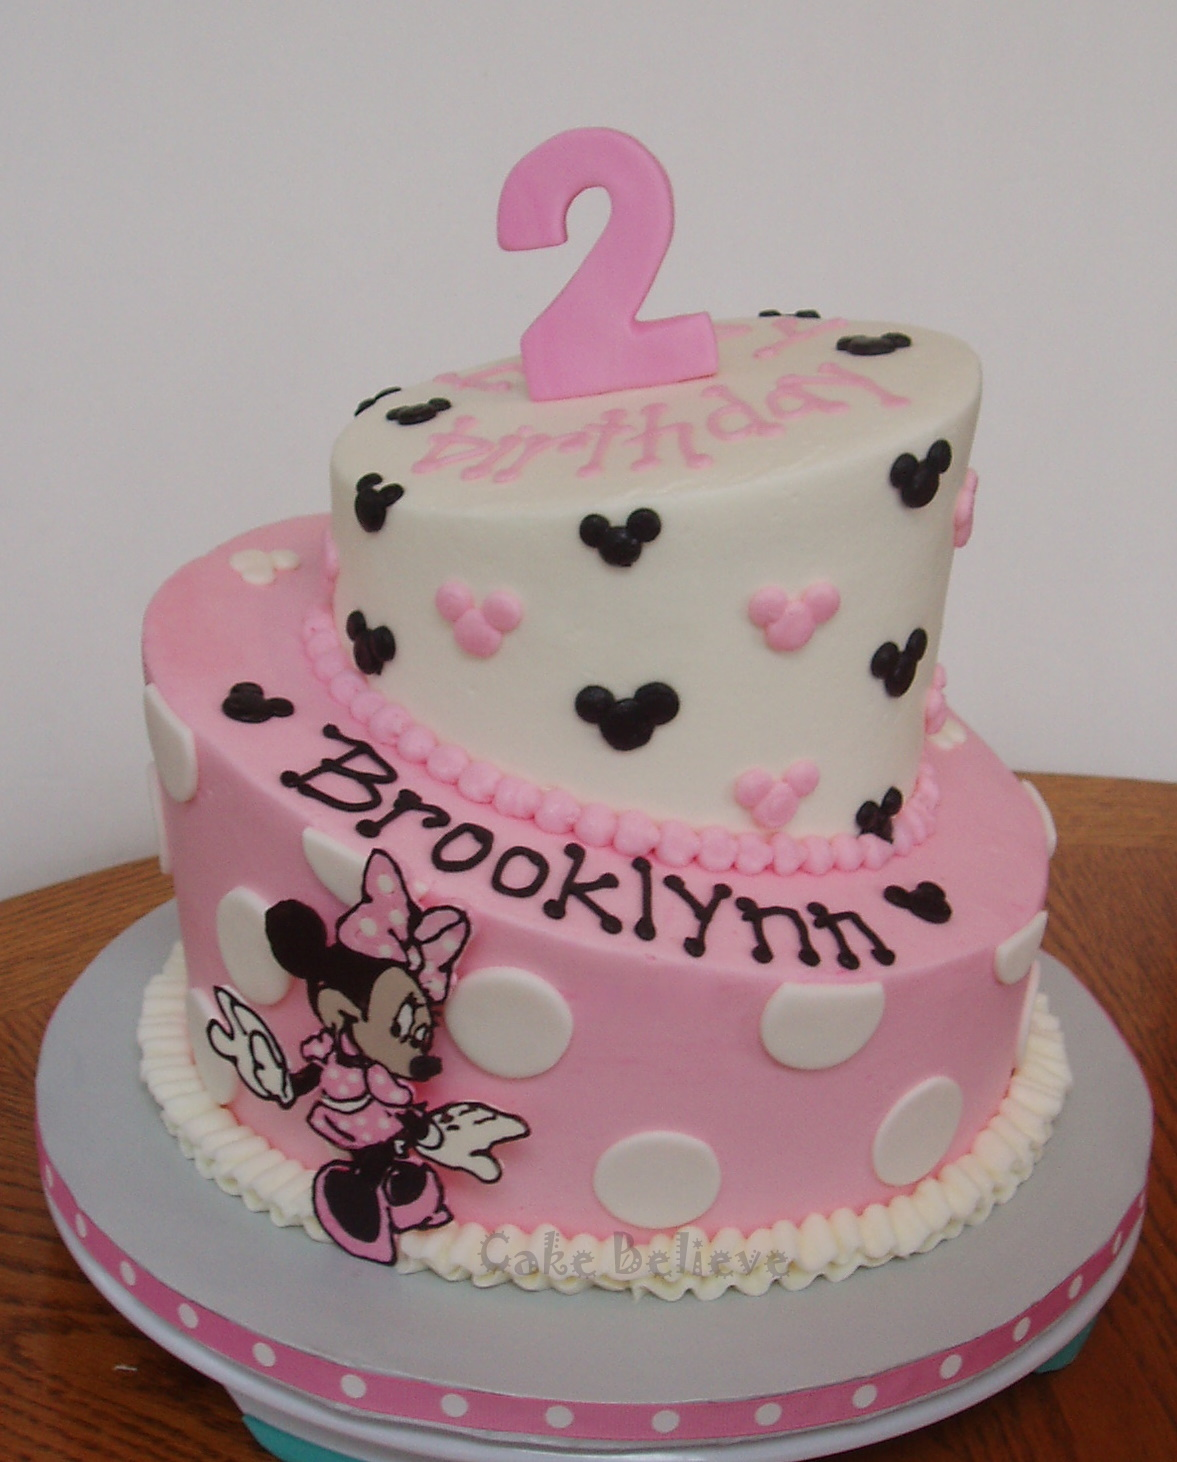 Cake Decorating Ideas Minnie Mouse : Cake Believe: Minnie Mouse goes Topsy Turvy!